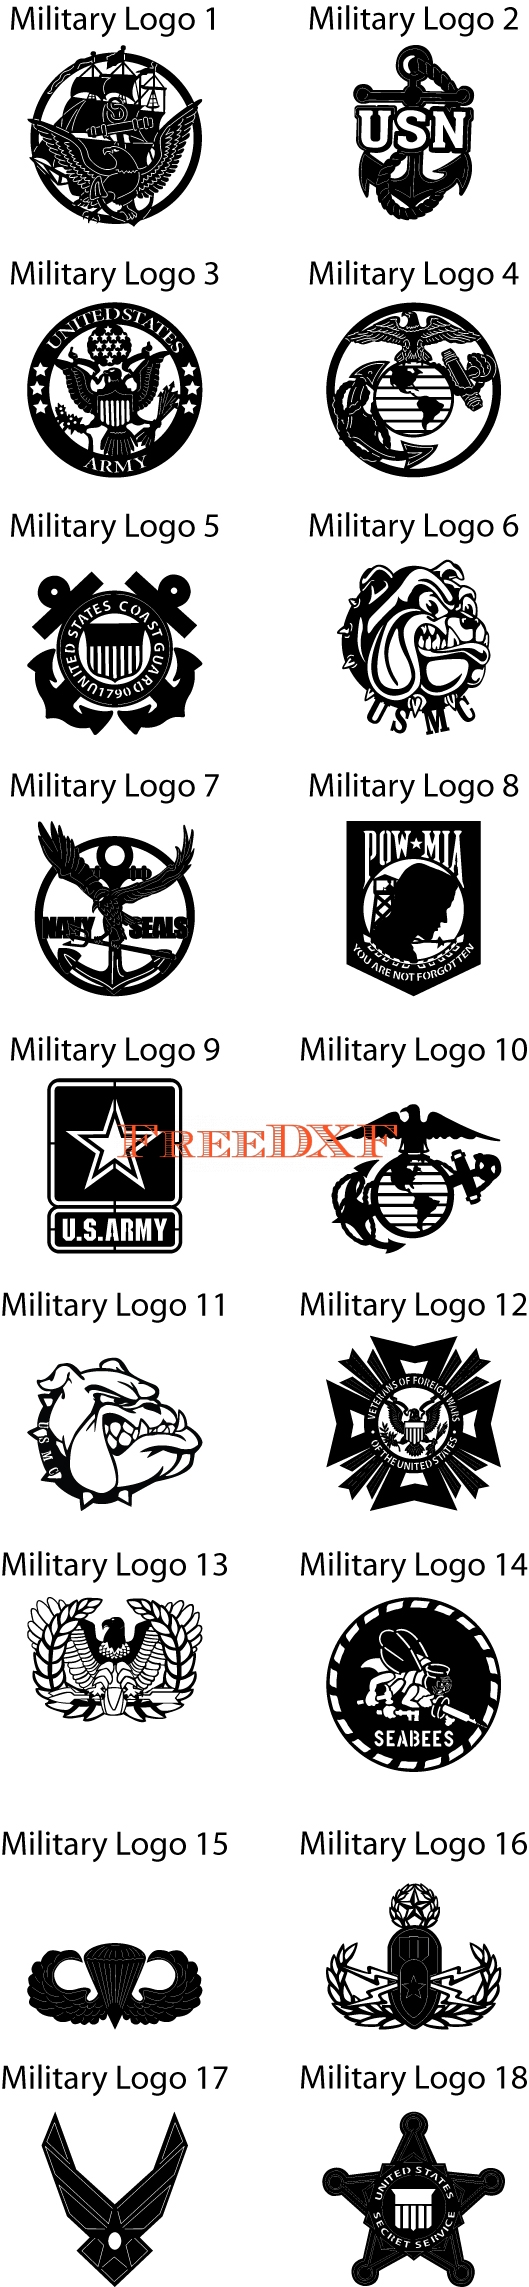 how to make military logo